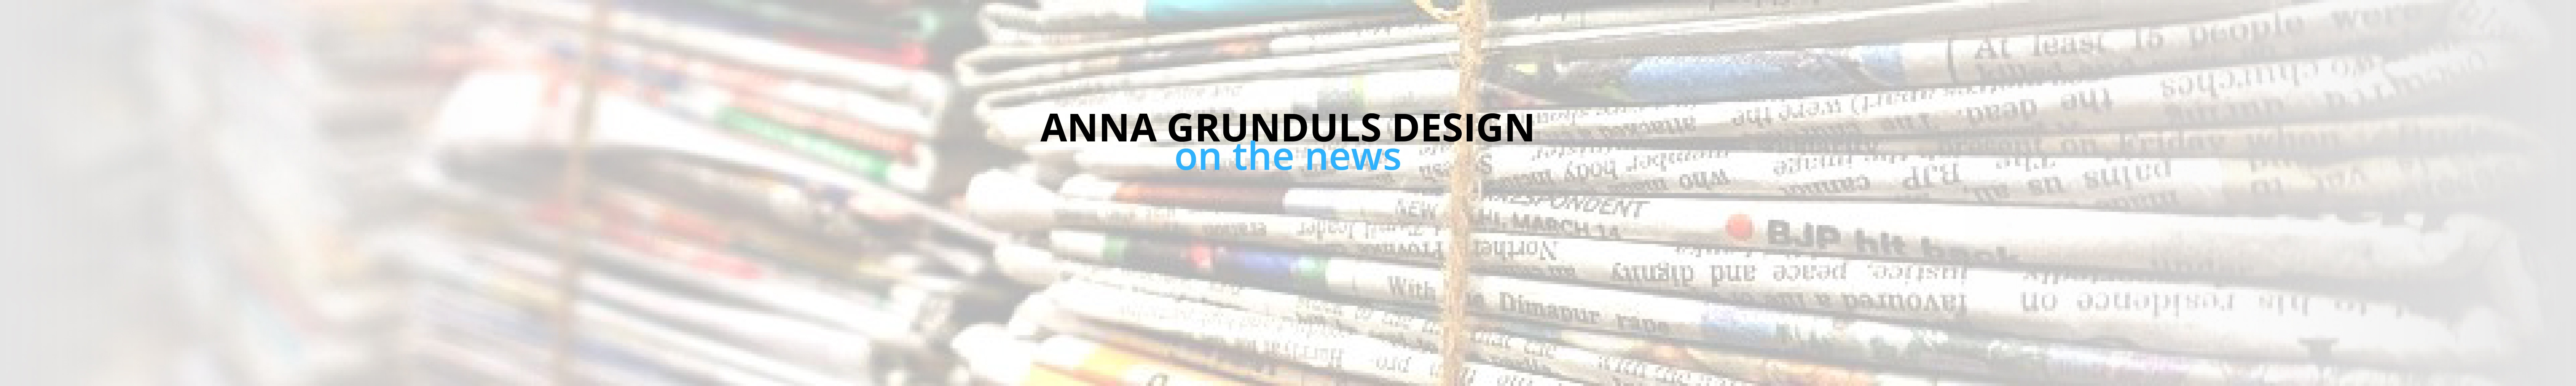 Anna Grunduls Design press releases